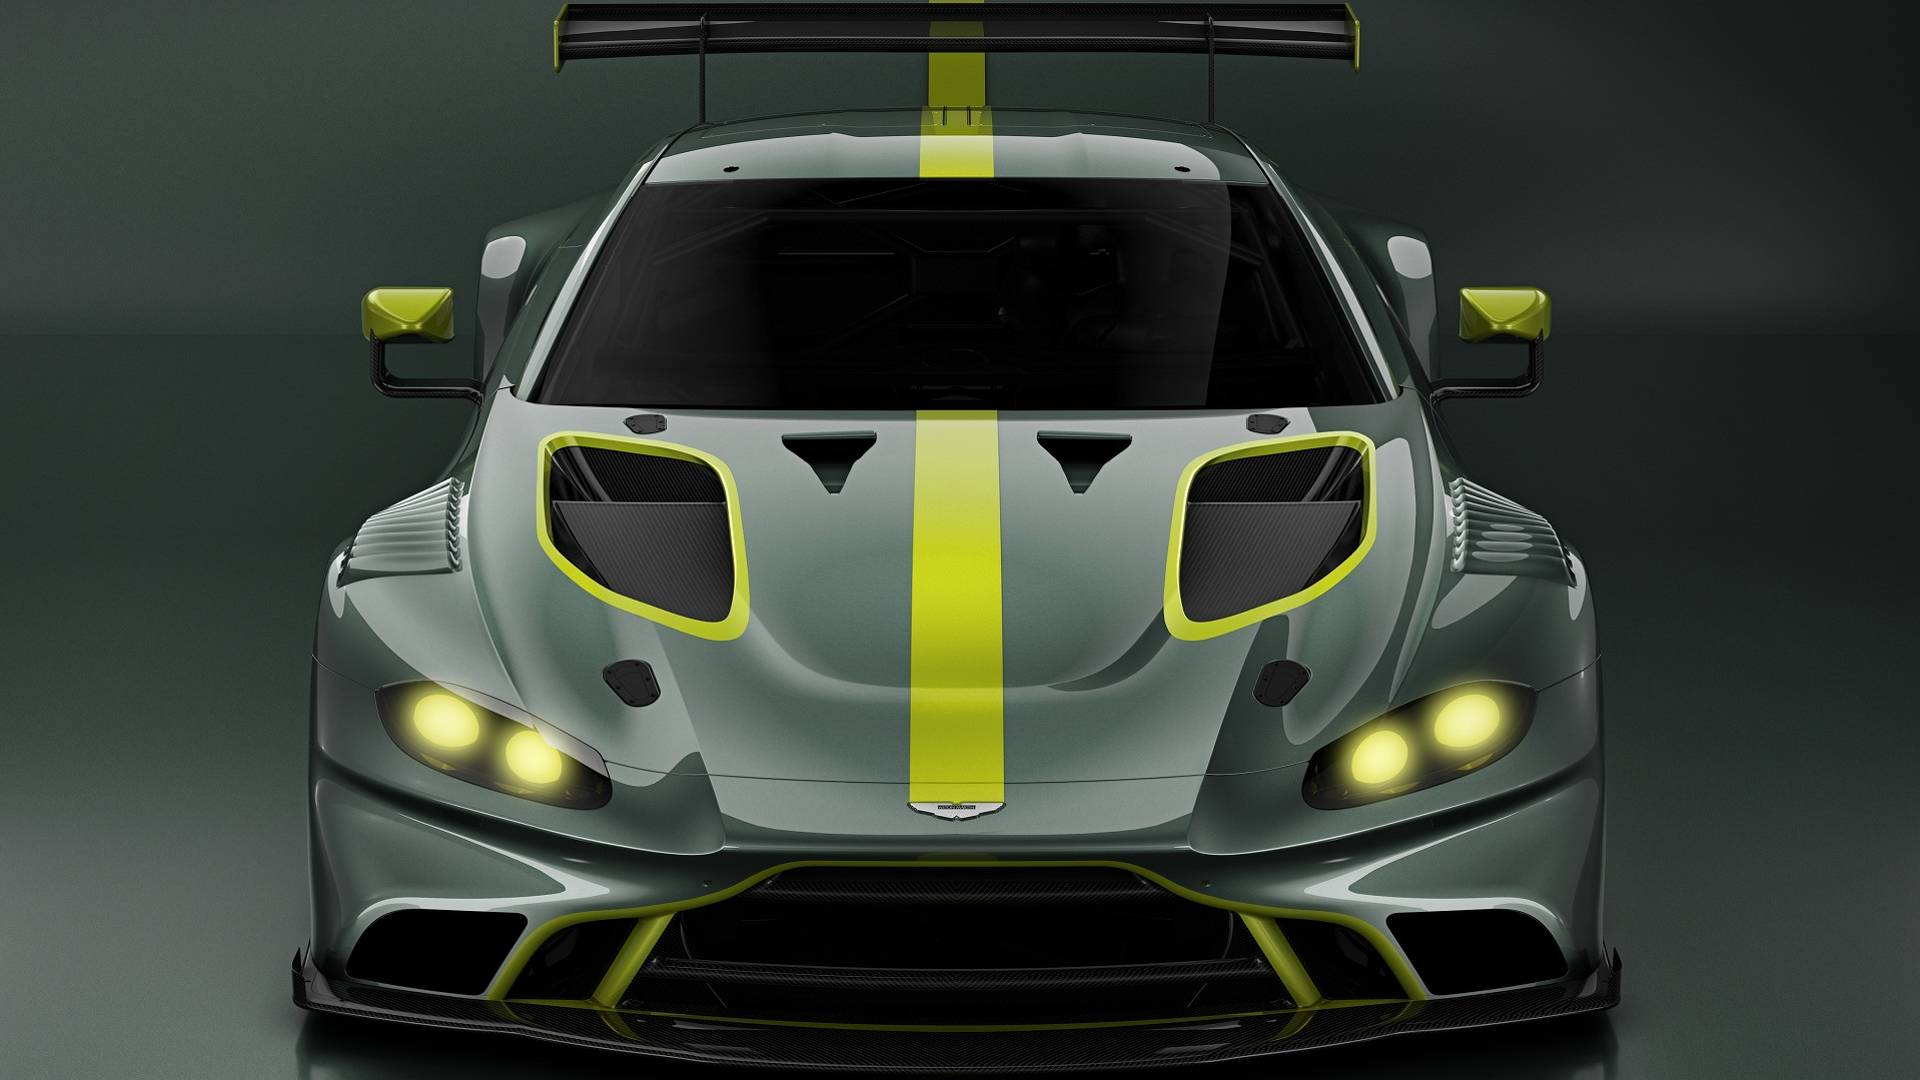 2019 Aston Martin Vantage Gt3 Teased Gt4 Also Coming